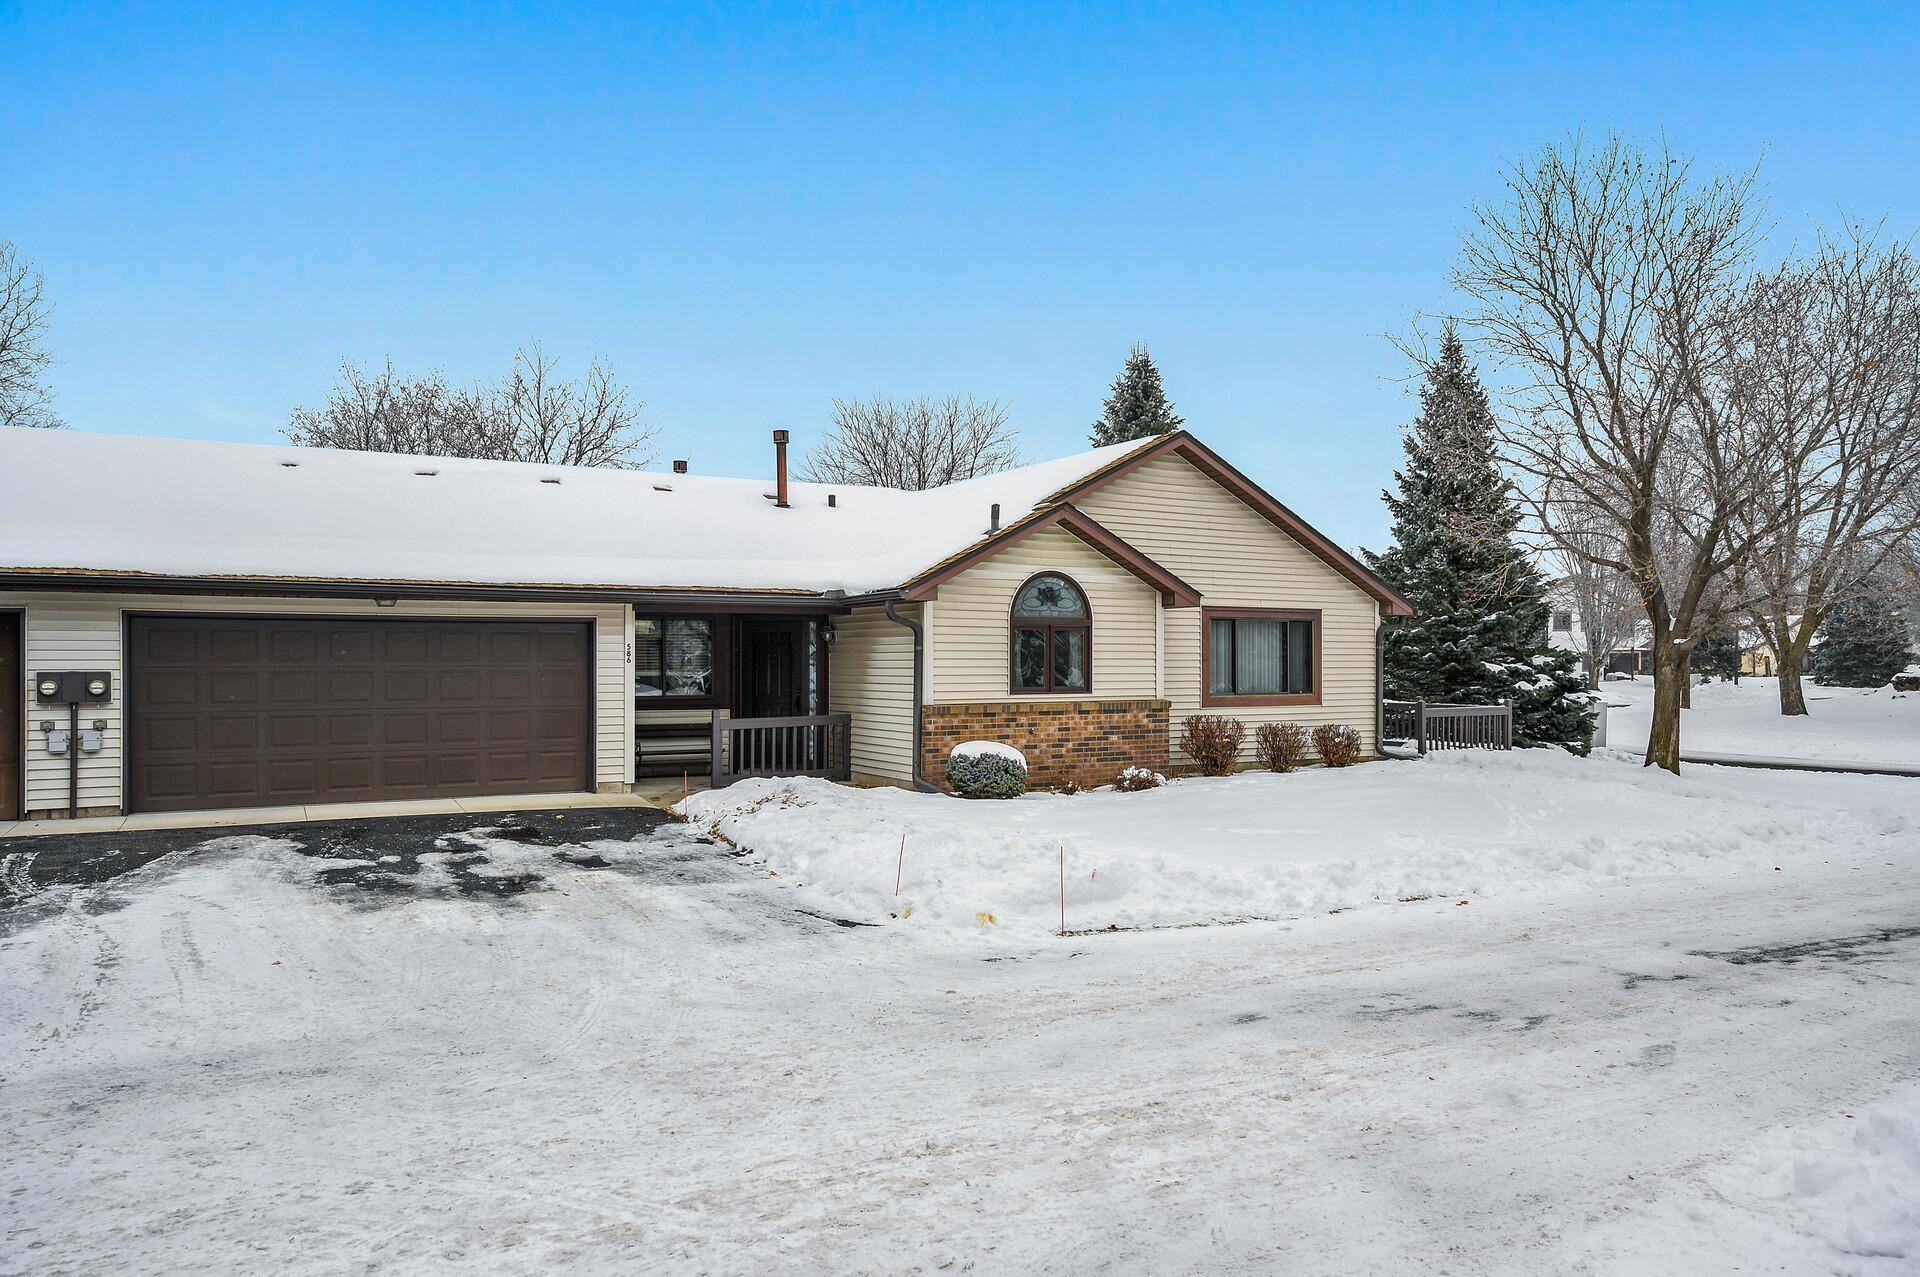 586 Donegal Circle, Shoreview, MN 55126 - MLS#: 5699165